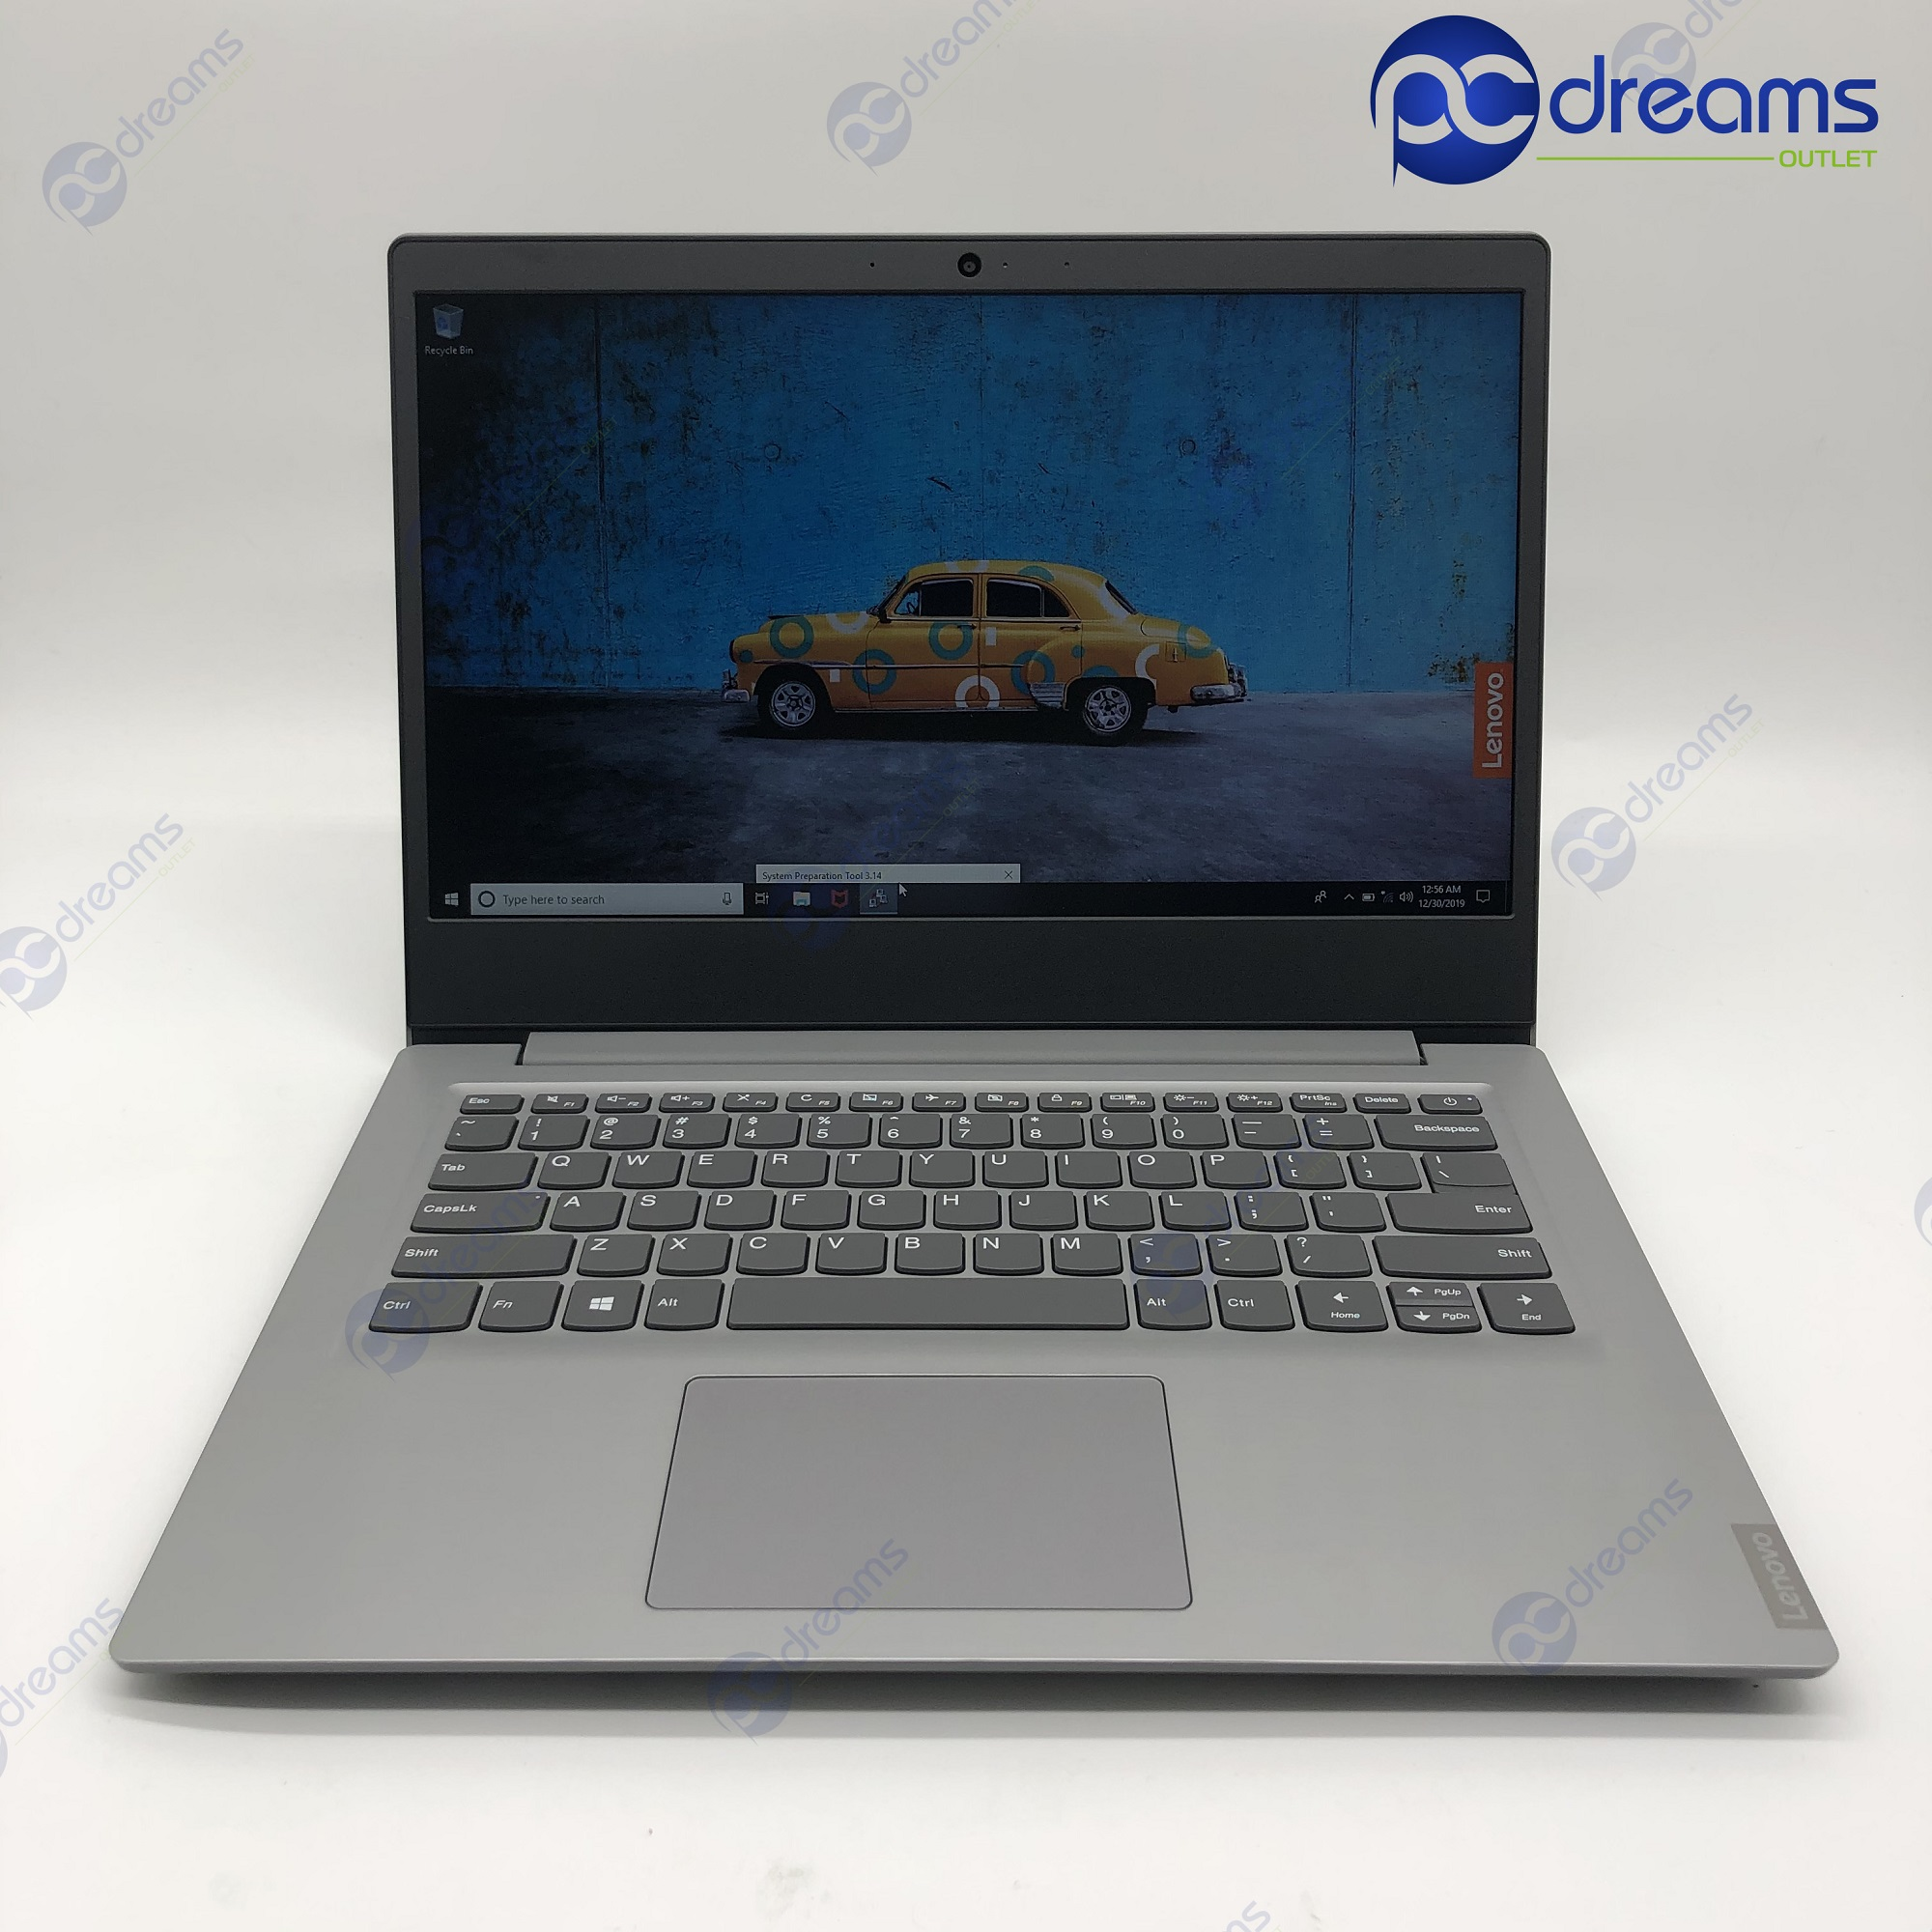 LENOVO IDEAPAD S145-14IWL (81MU005ASB) CELERON/4GB/256GB M.2 PCIe SSD [New Reconditioned]